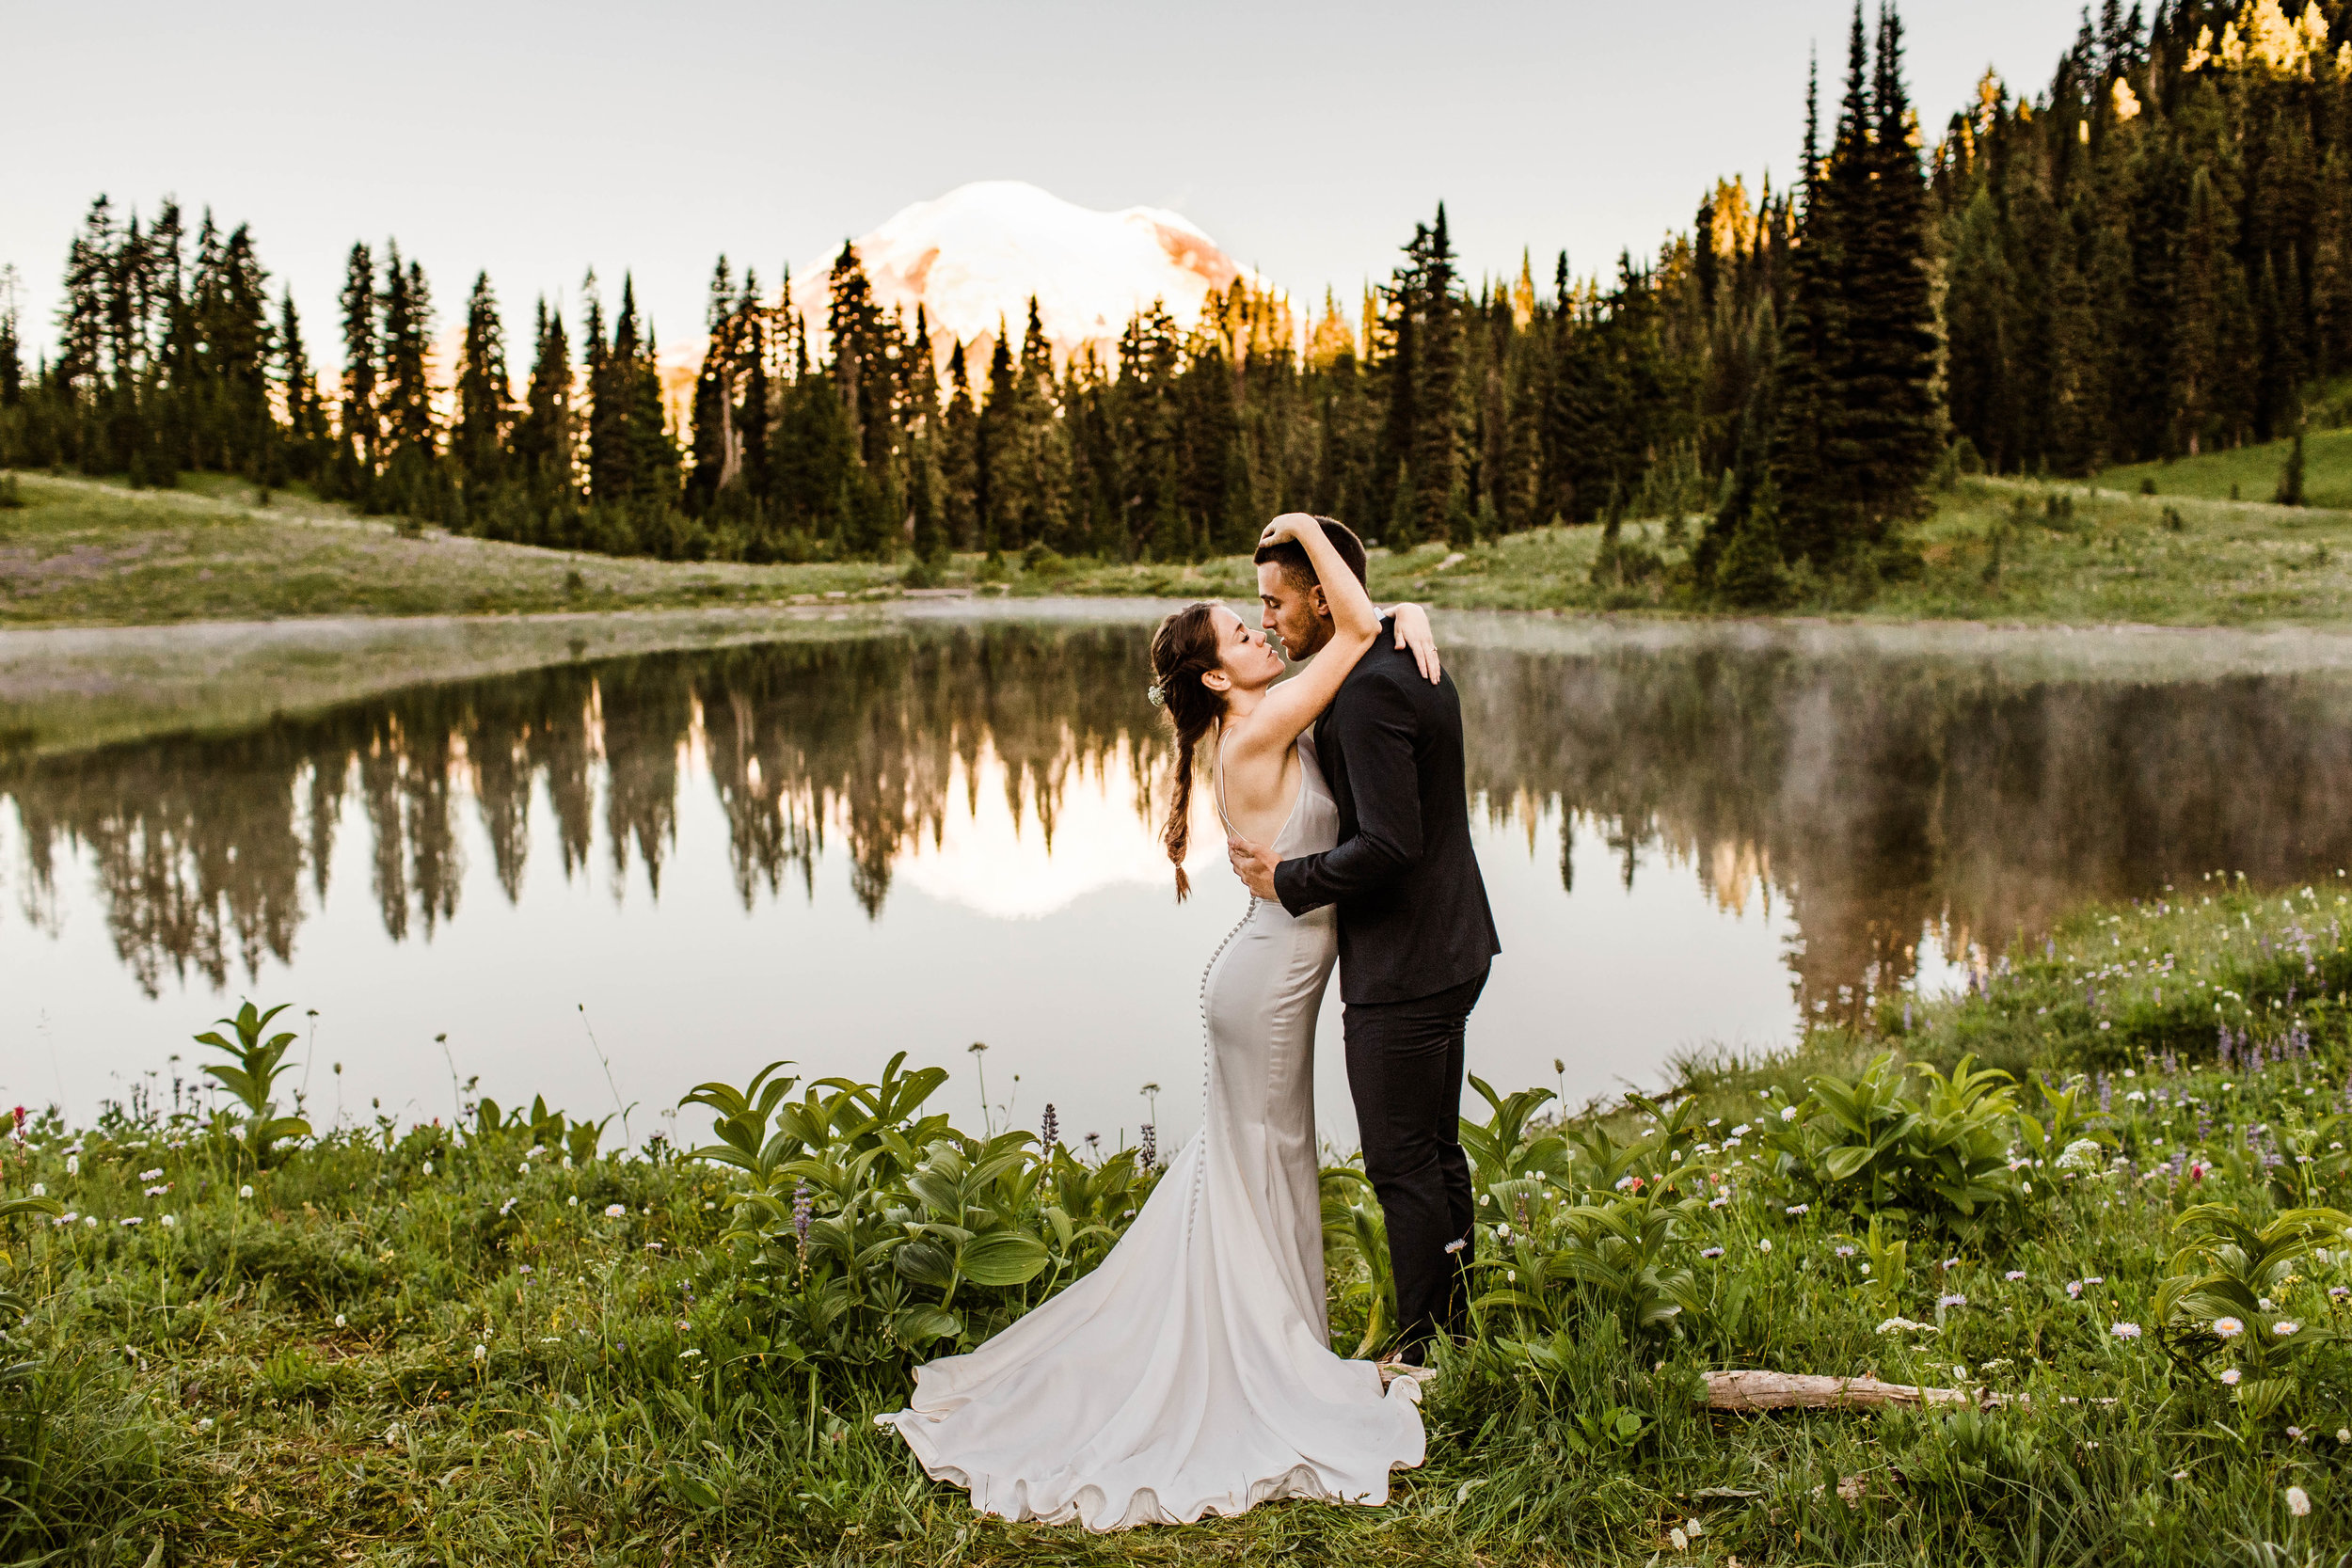 Mount Rainier National Park elopement ceremony at an alpine lake | Washington state adventure wedding photographers